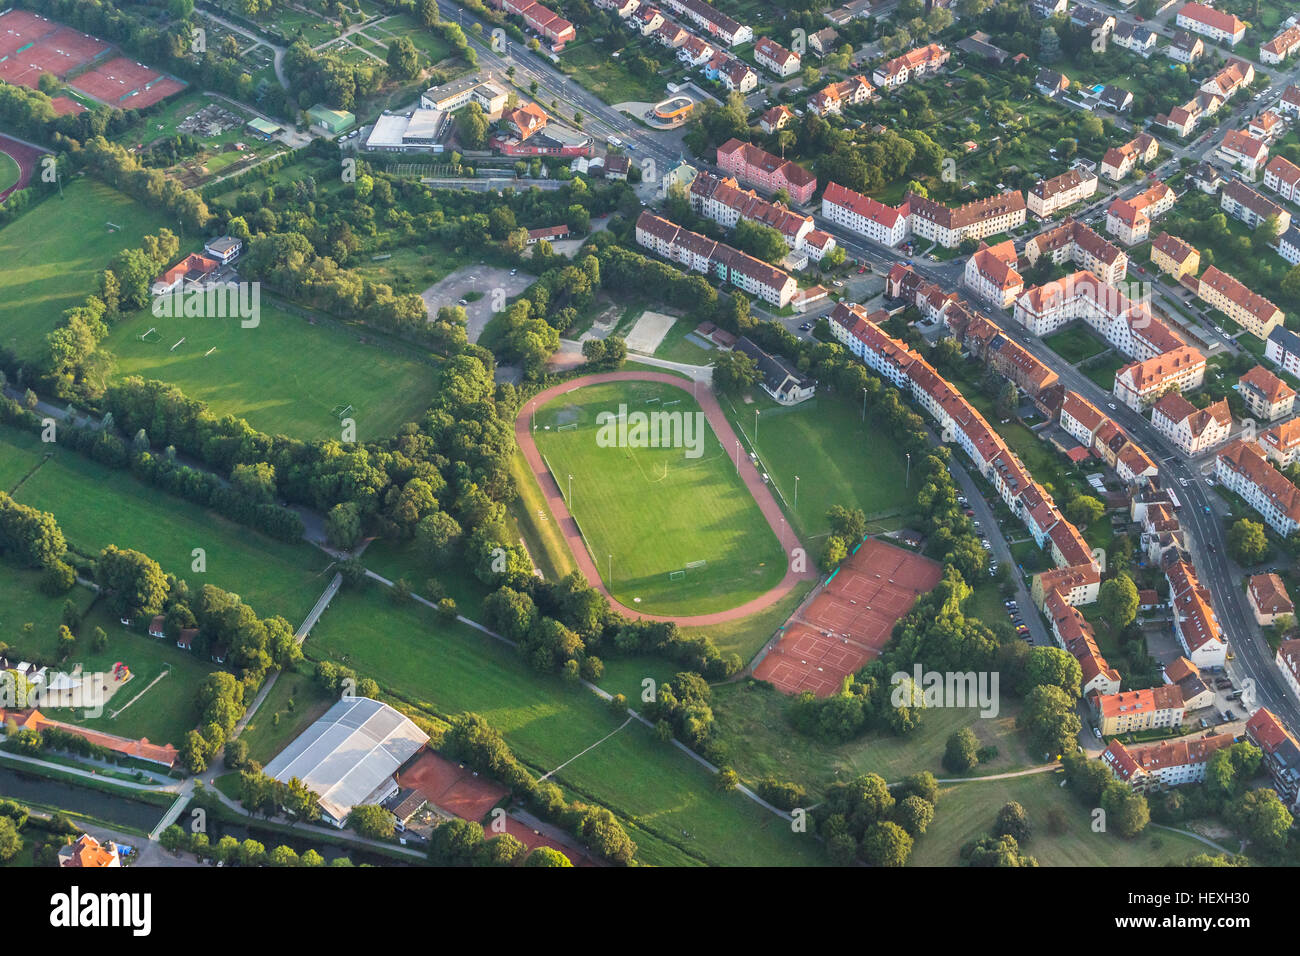 Germany, Hildesheim, arial view of sportsfield - Stock Image